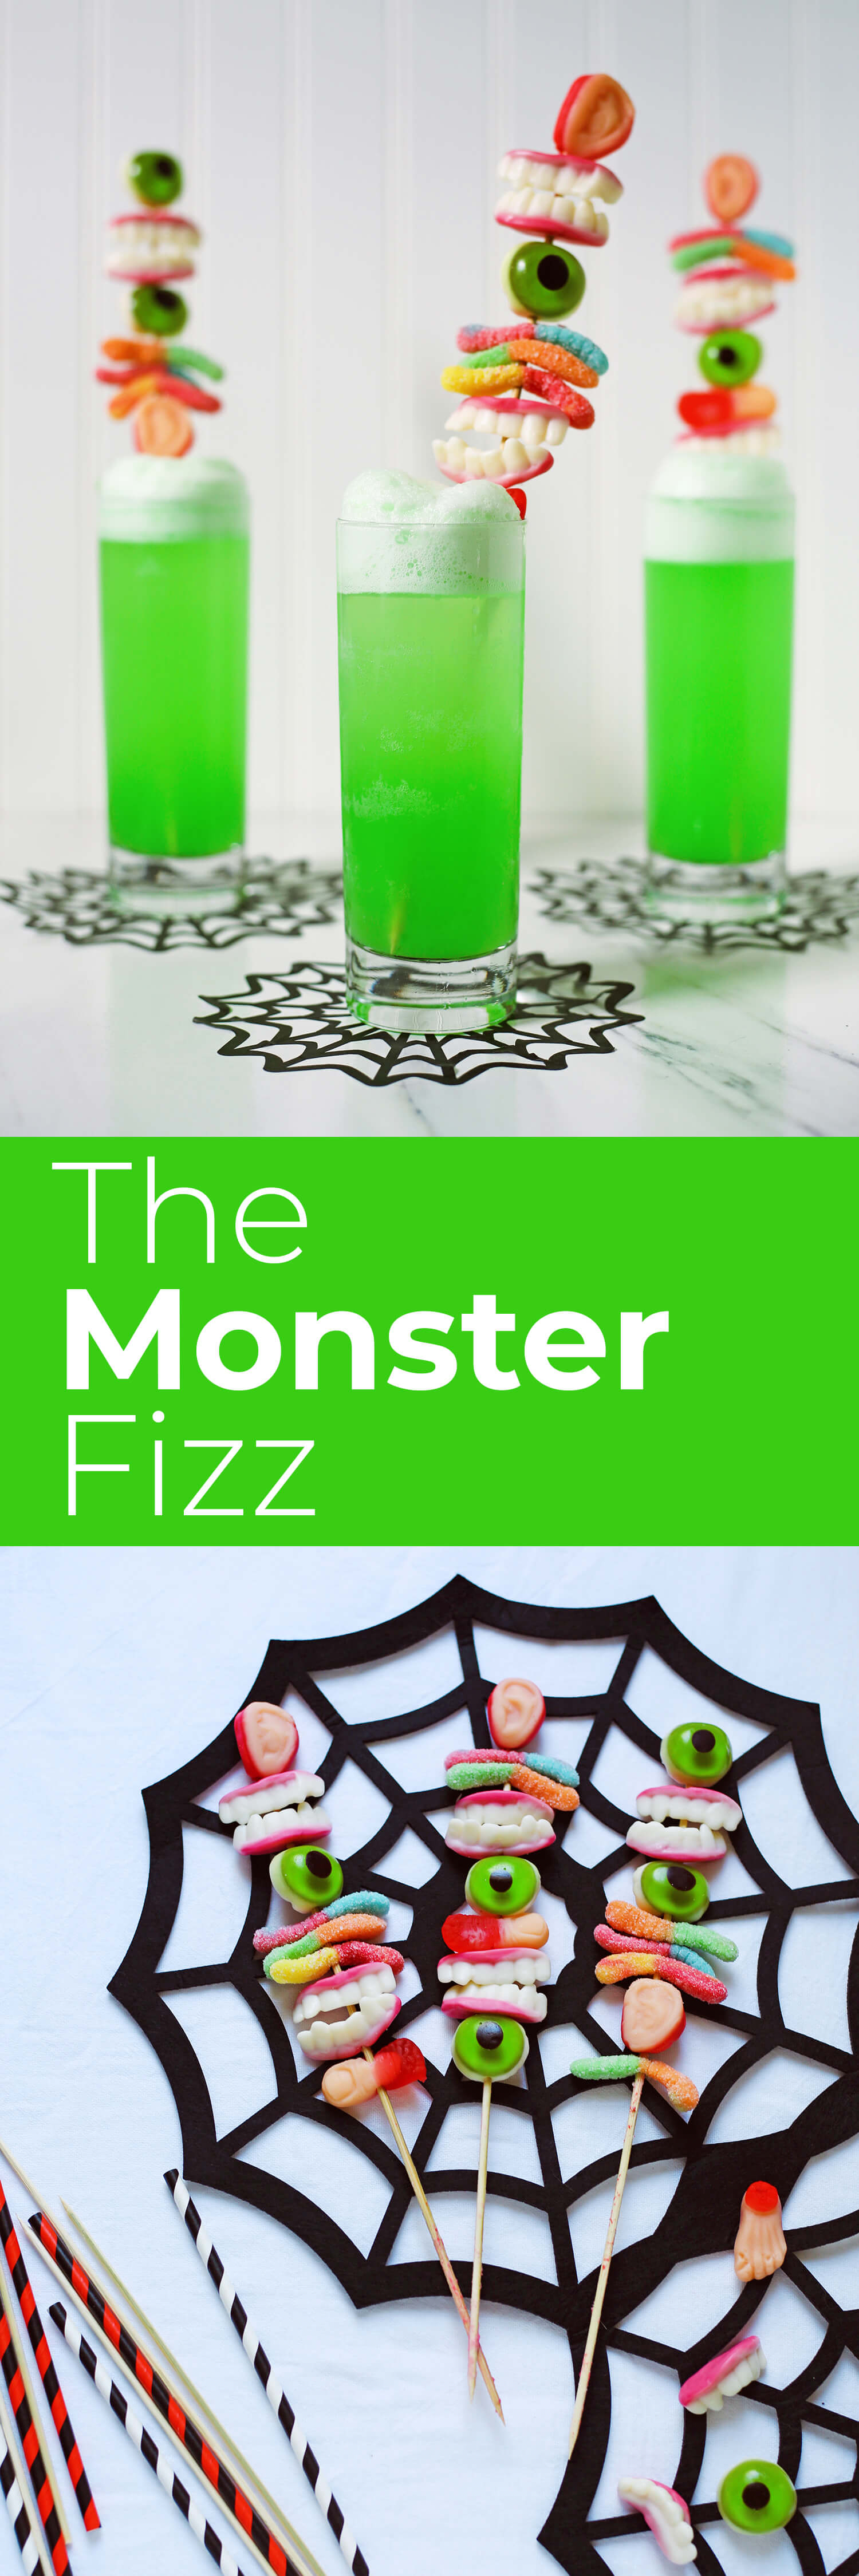 Trick or Treat: The Monster Fizz